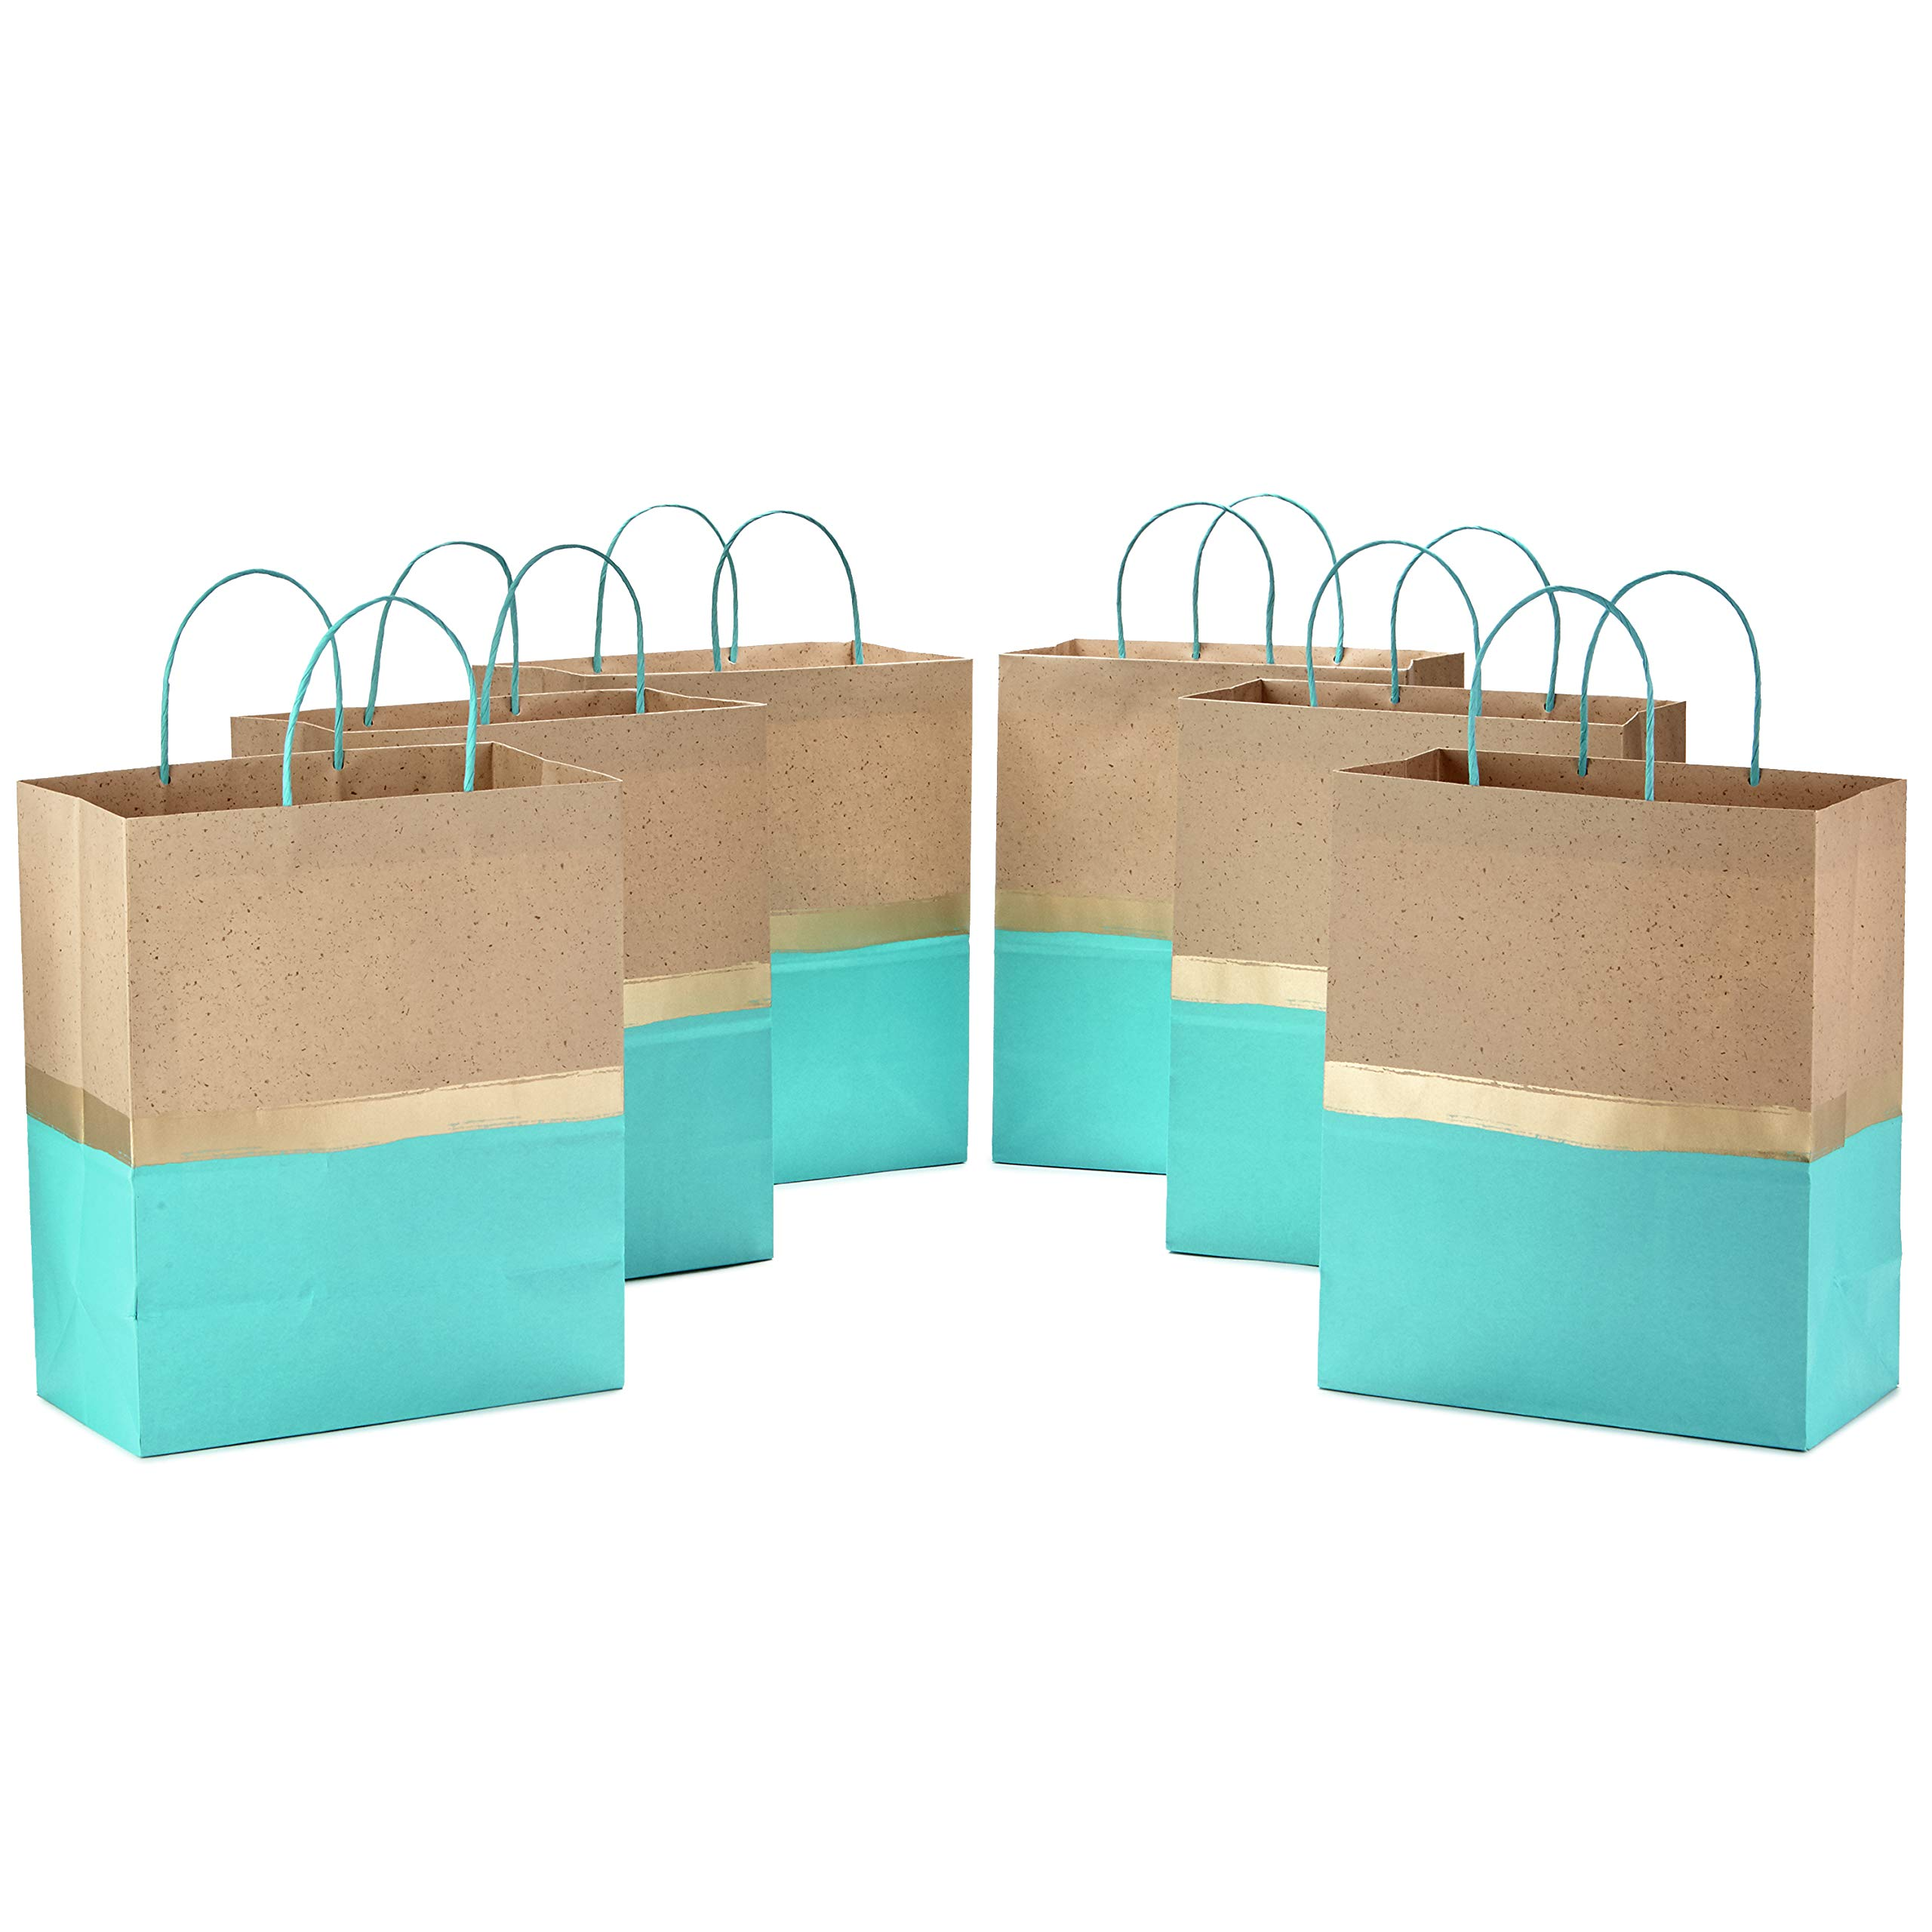 """Hallmark 13"""" Large Paper Gift Bags (Pack of 6 - Turquoise & Kraft) for Birthdays, Easter, Weddings, Mother's Day, Baby Showers, Bridal Showers or Any Occasion"""